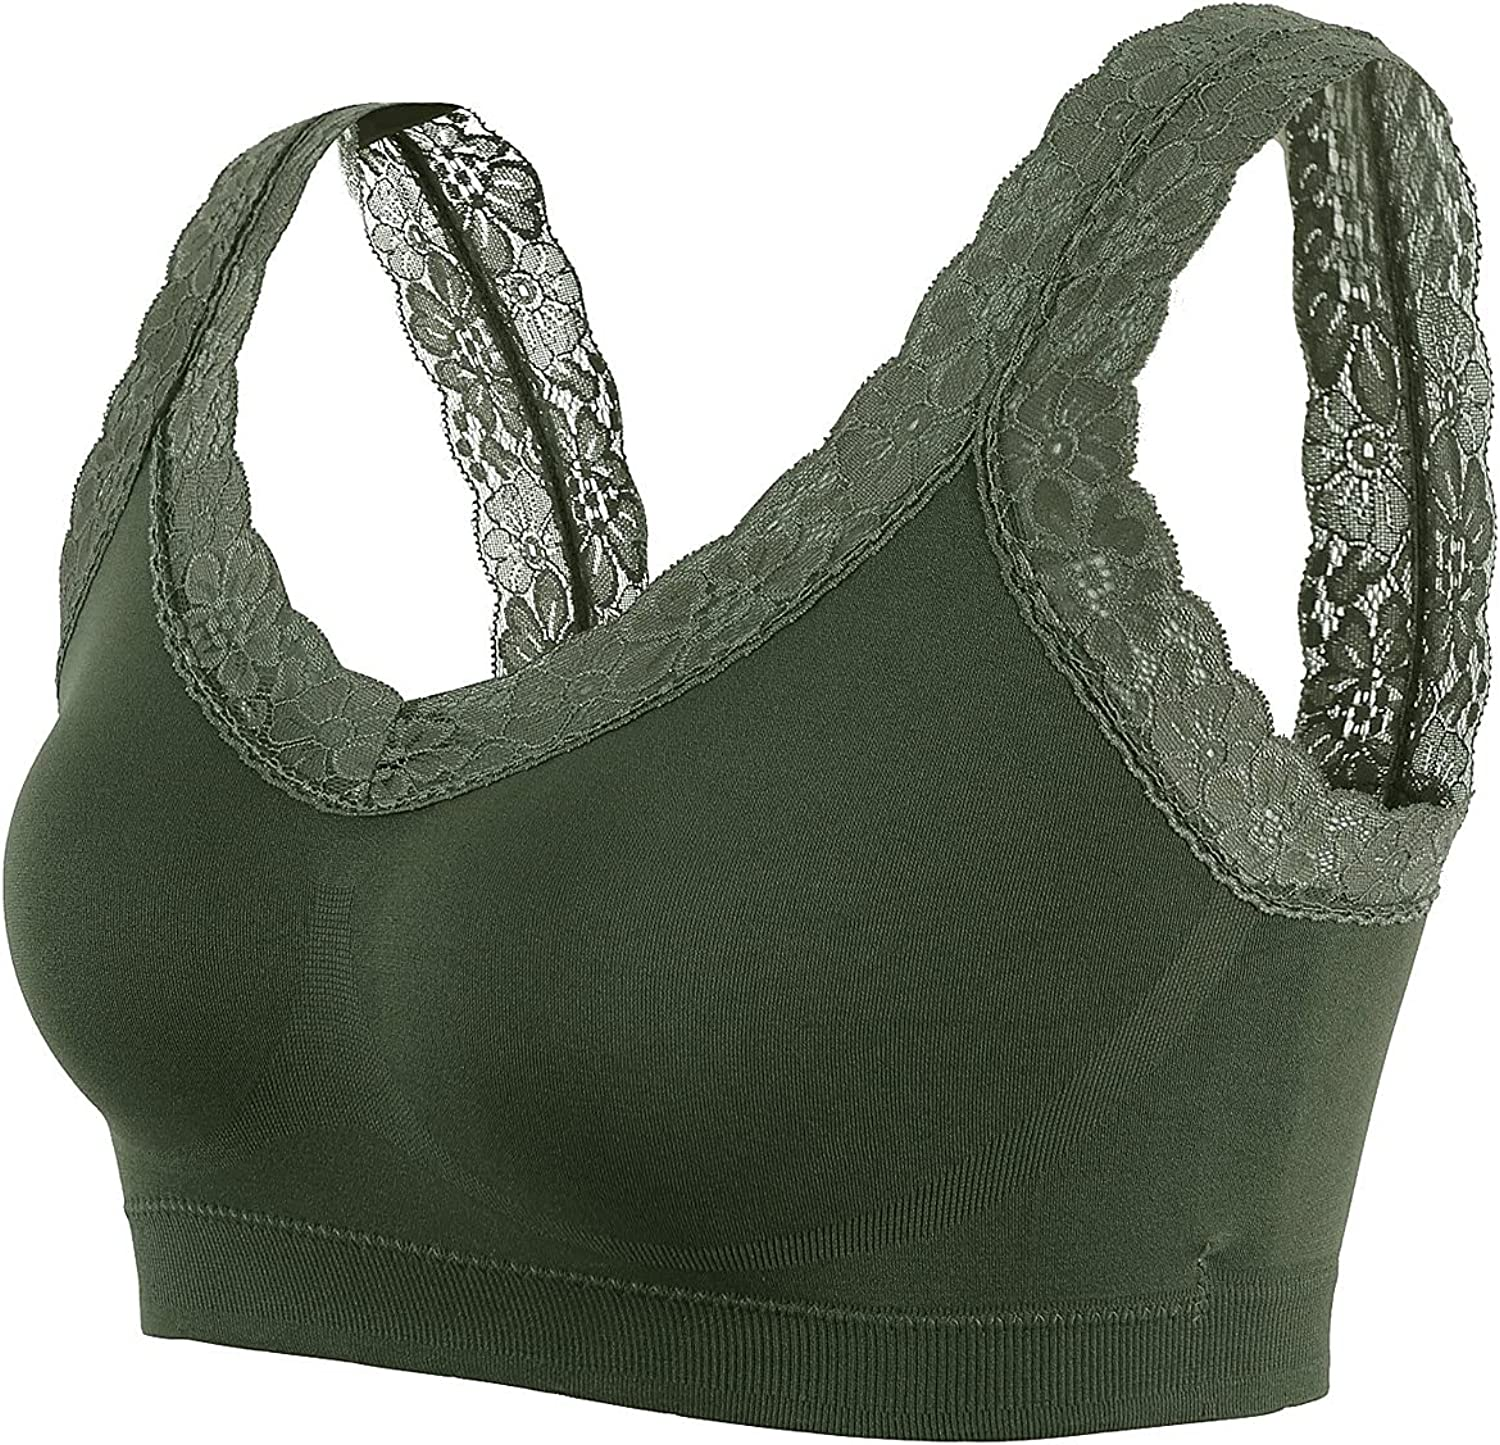 Women's Lace Trim Wirefree Bra Seamless Full Cup Sports Bras for Yoga Workout Exercise Sleeping Everyday Wear